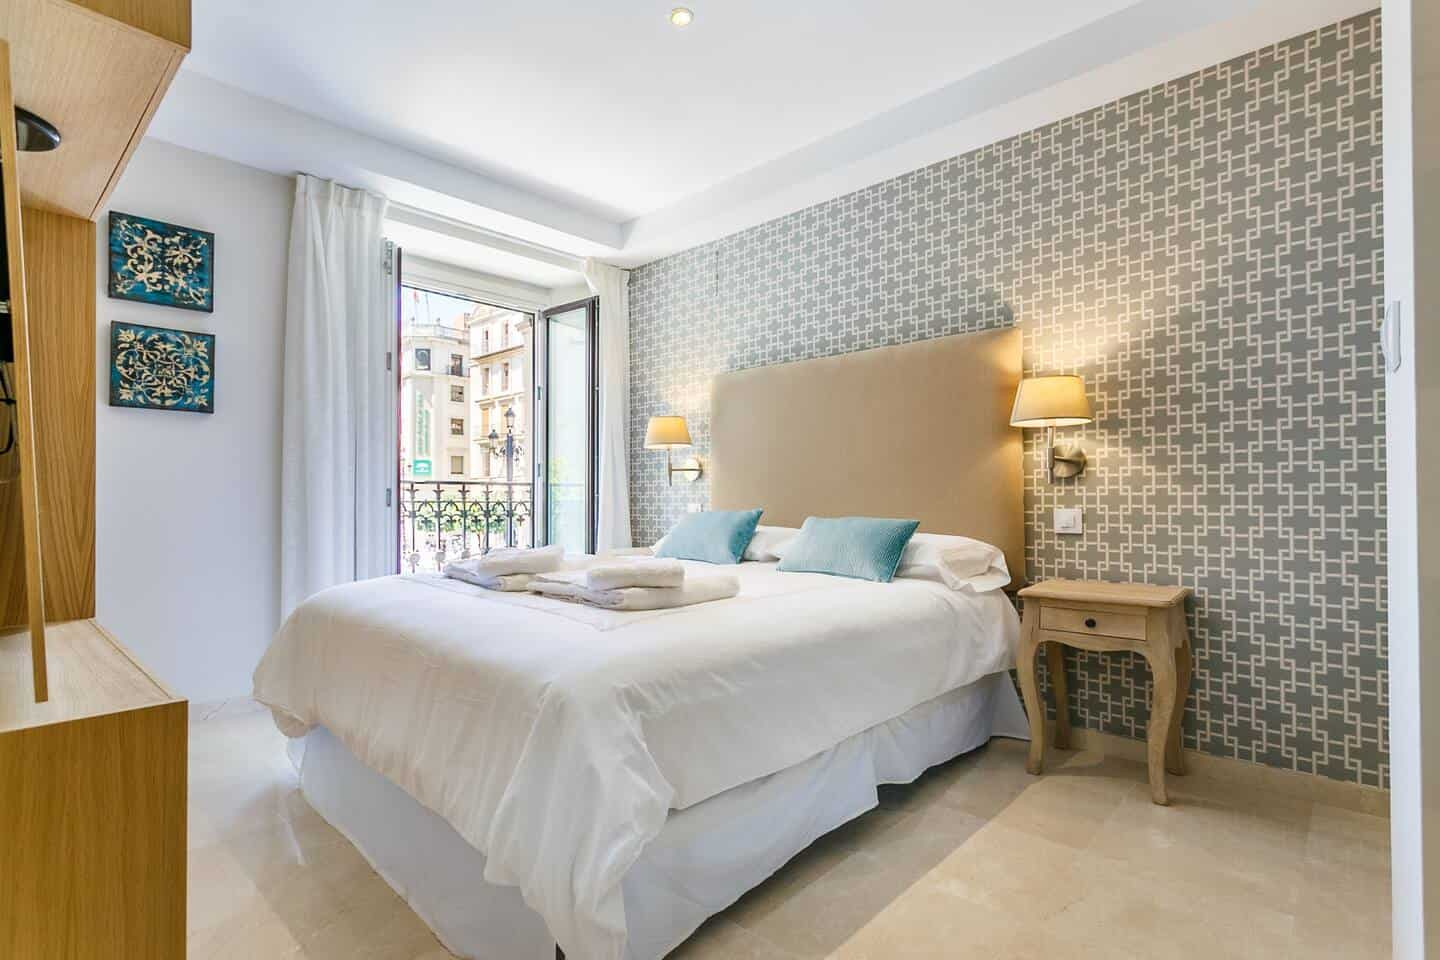 Image of Airbnb rental in Seville, Spain